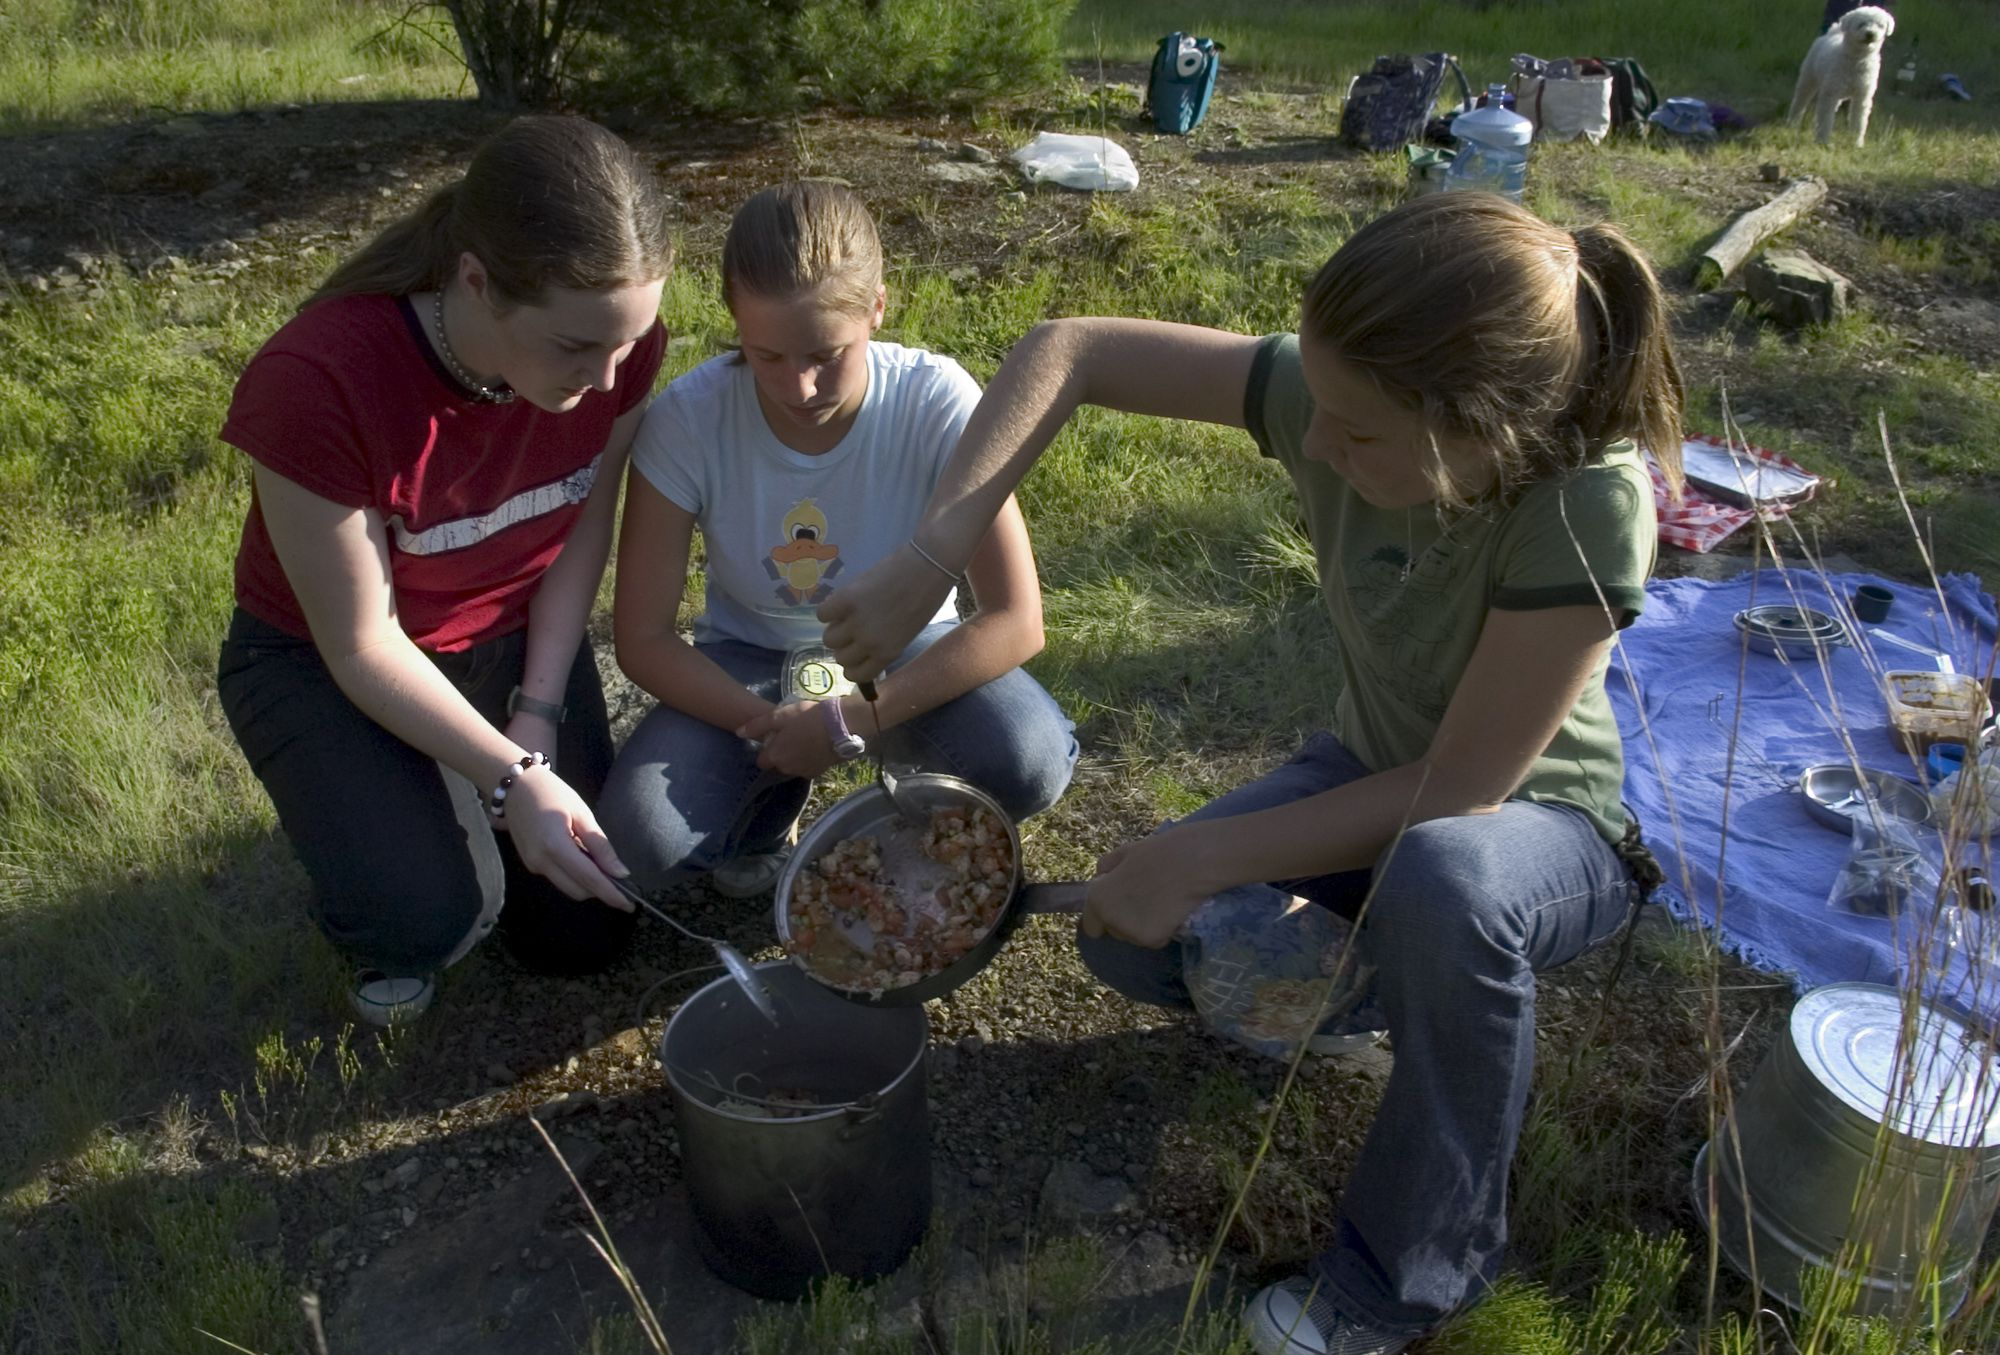 ** FOR USE WITH AP WEEKLY FEATURES **  Girl Scouts Hayden Parker, left, Elle Girard, center, and Samantha Westray mix the final ingredients into a pot of pasta at a cookout Monday, Aug. 9, 2004, in Westport, Conn. The 13-year-olds were trying out their skills at outdoor cooking, using gear portable in backpacks. (AP Photo/Douglas Healey)